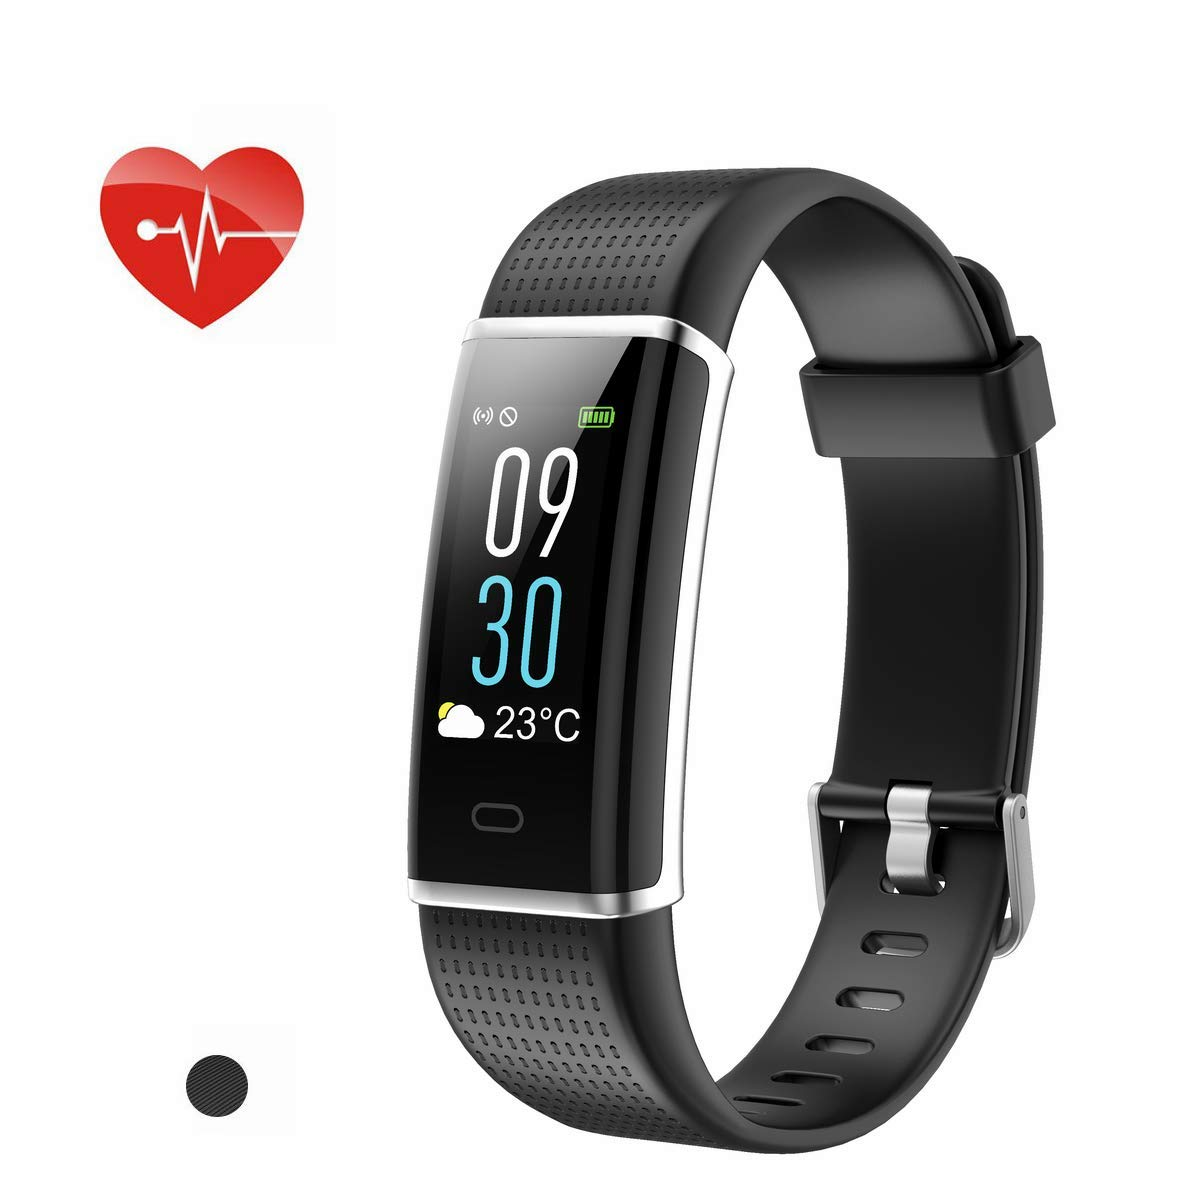 Updated Heart Rate Monitor Waterproof Sport Smart Bracelet Bluetooth Pedometer Slim Activity Wristband with 14 Training Modes for iOS Android Longess Fitness Tracker